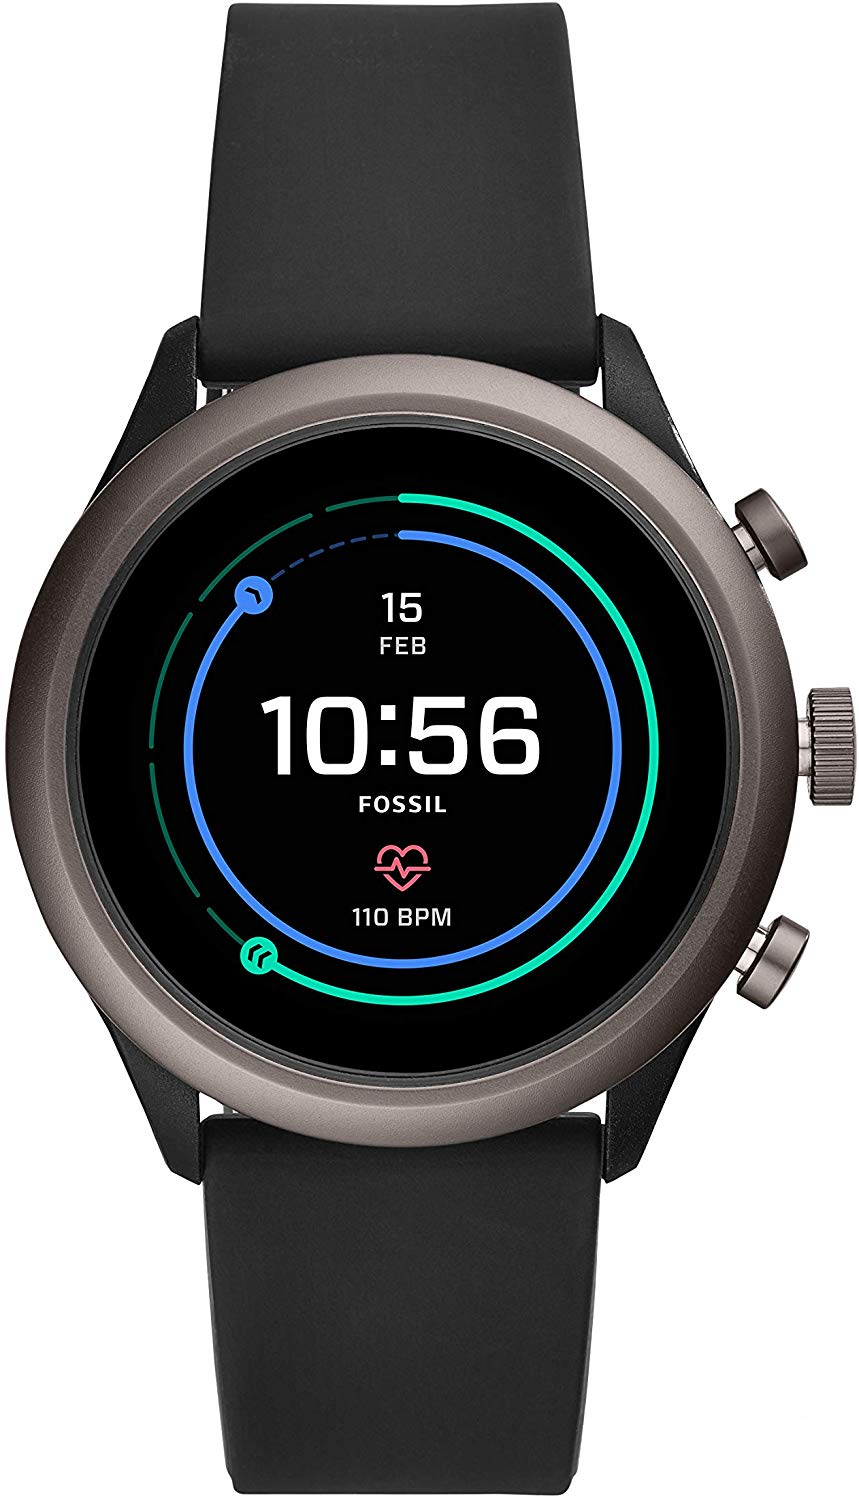 Fossil Gen 4 Sport (43mm) Specs and features